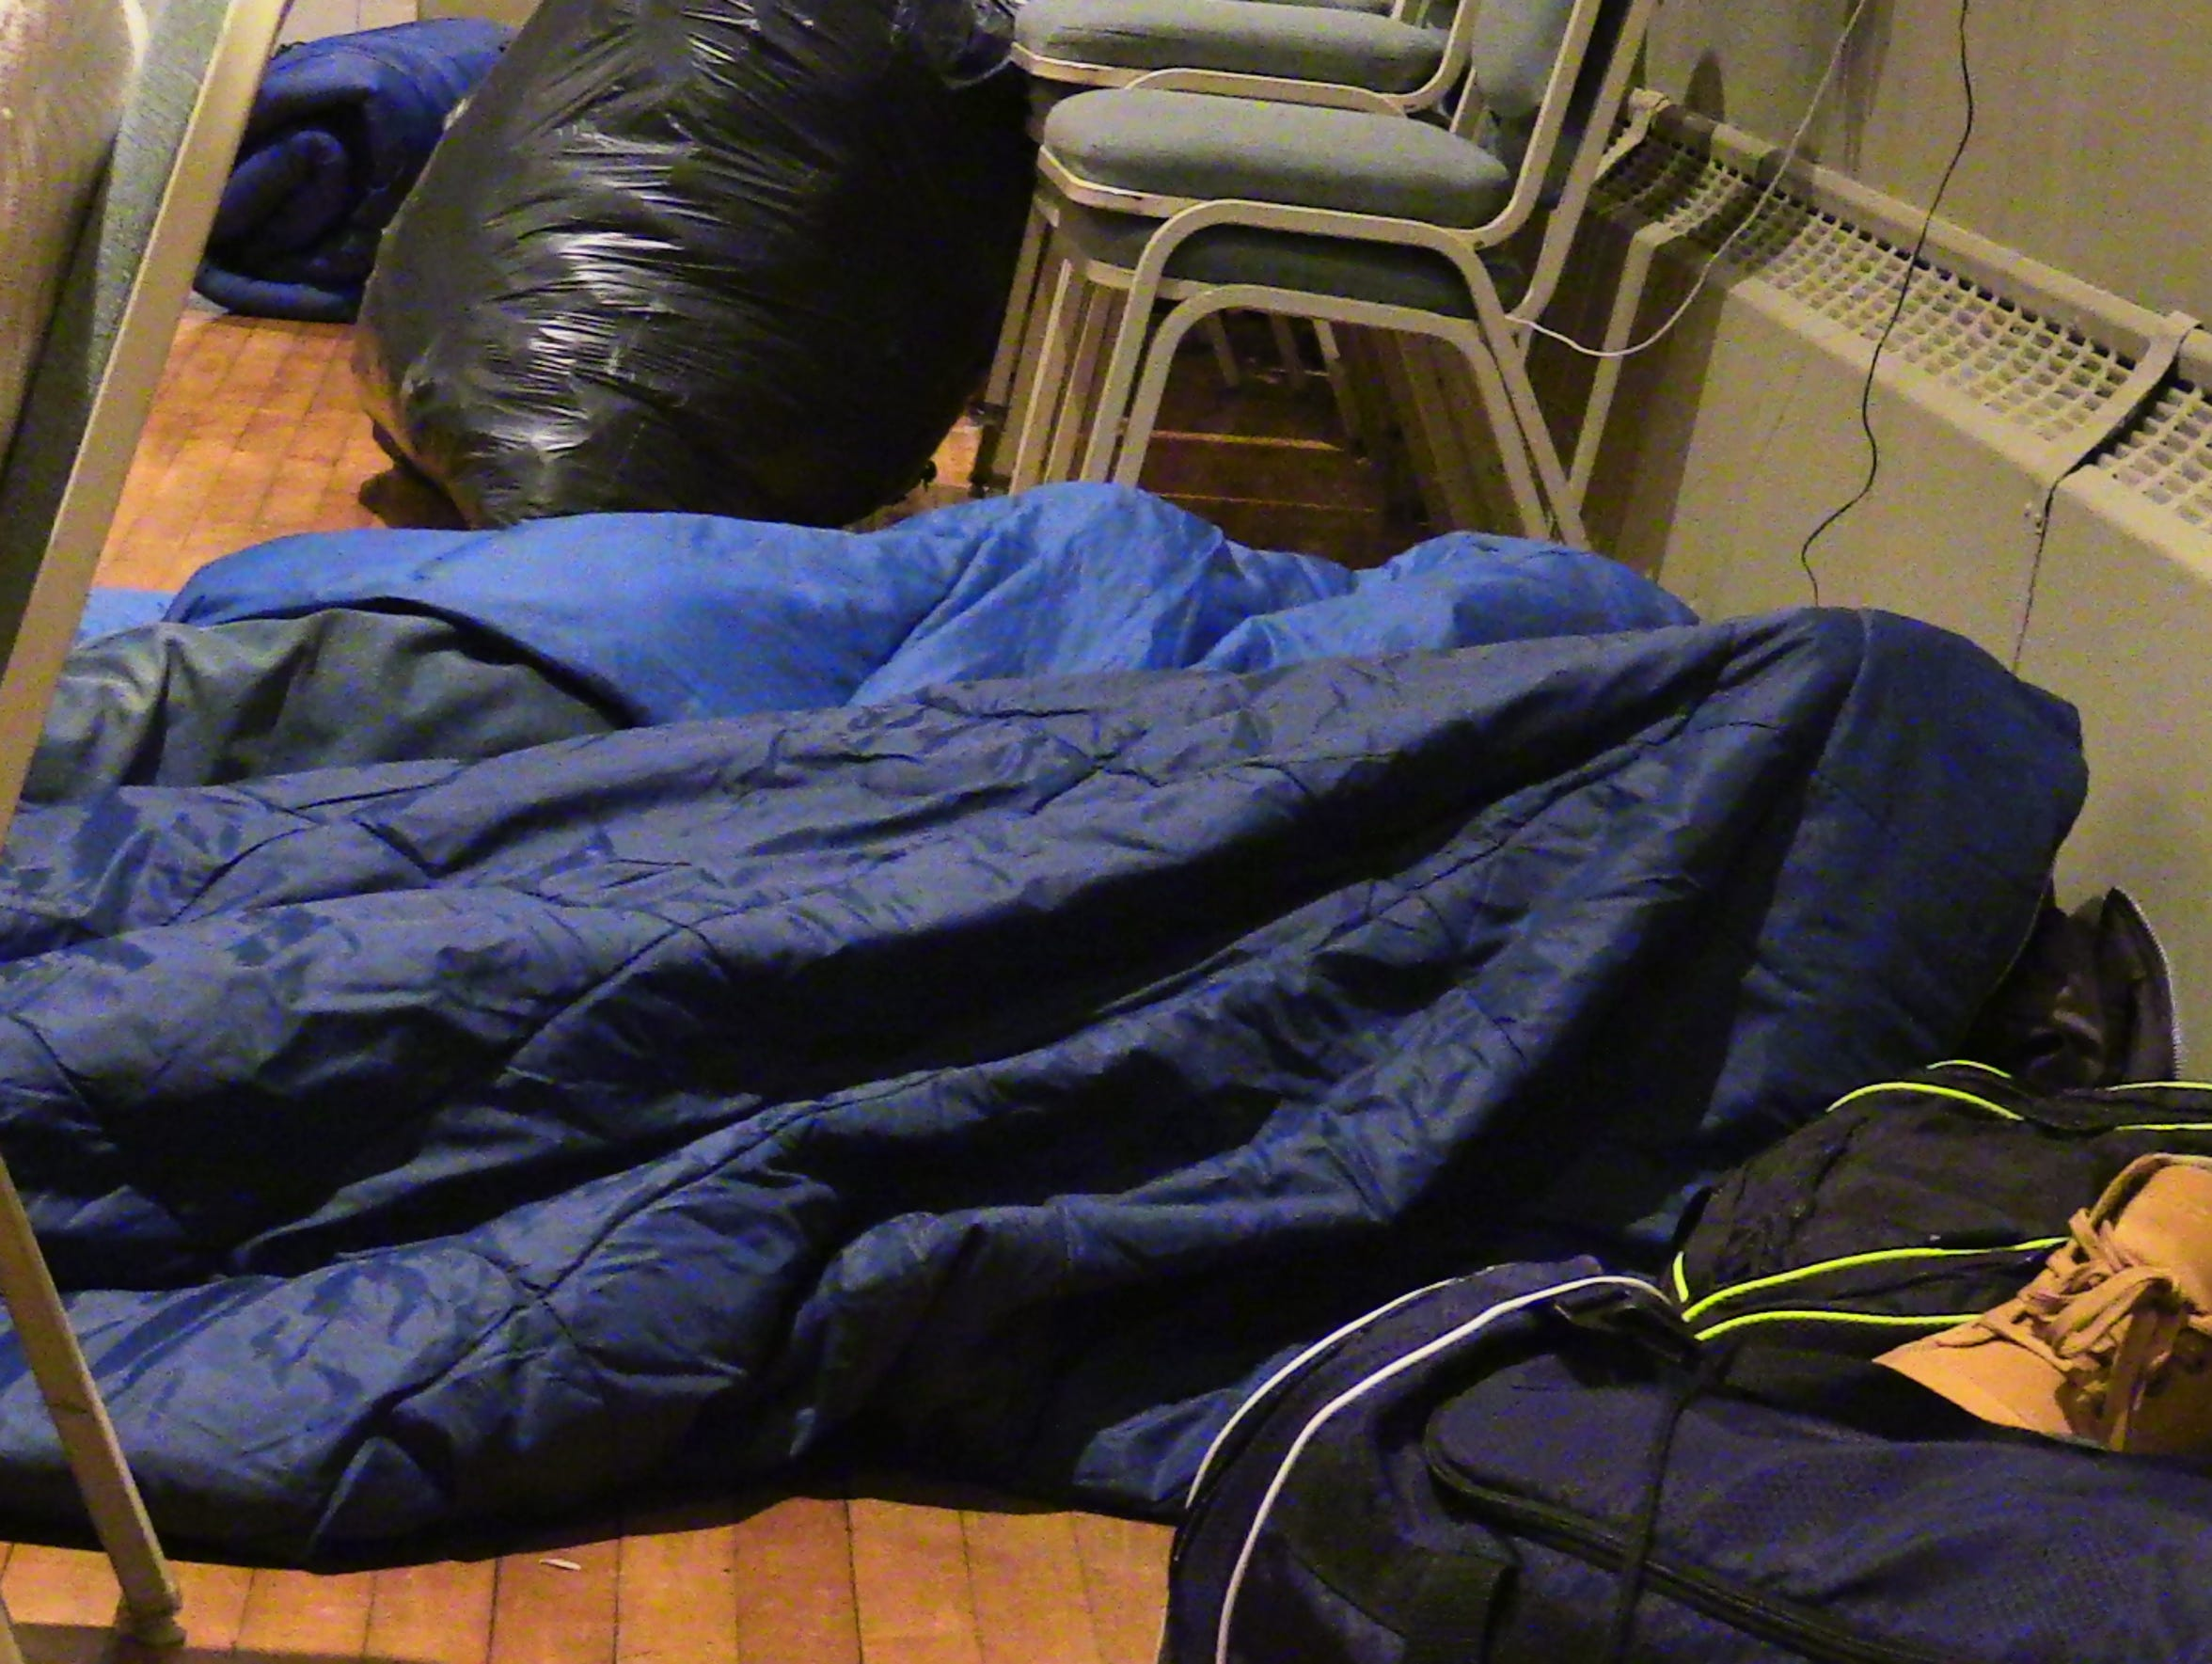 Homeless men settle in for the night March 30 at the